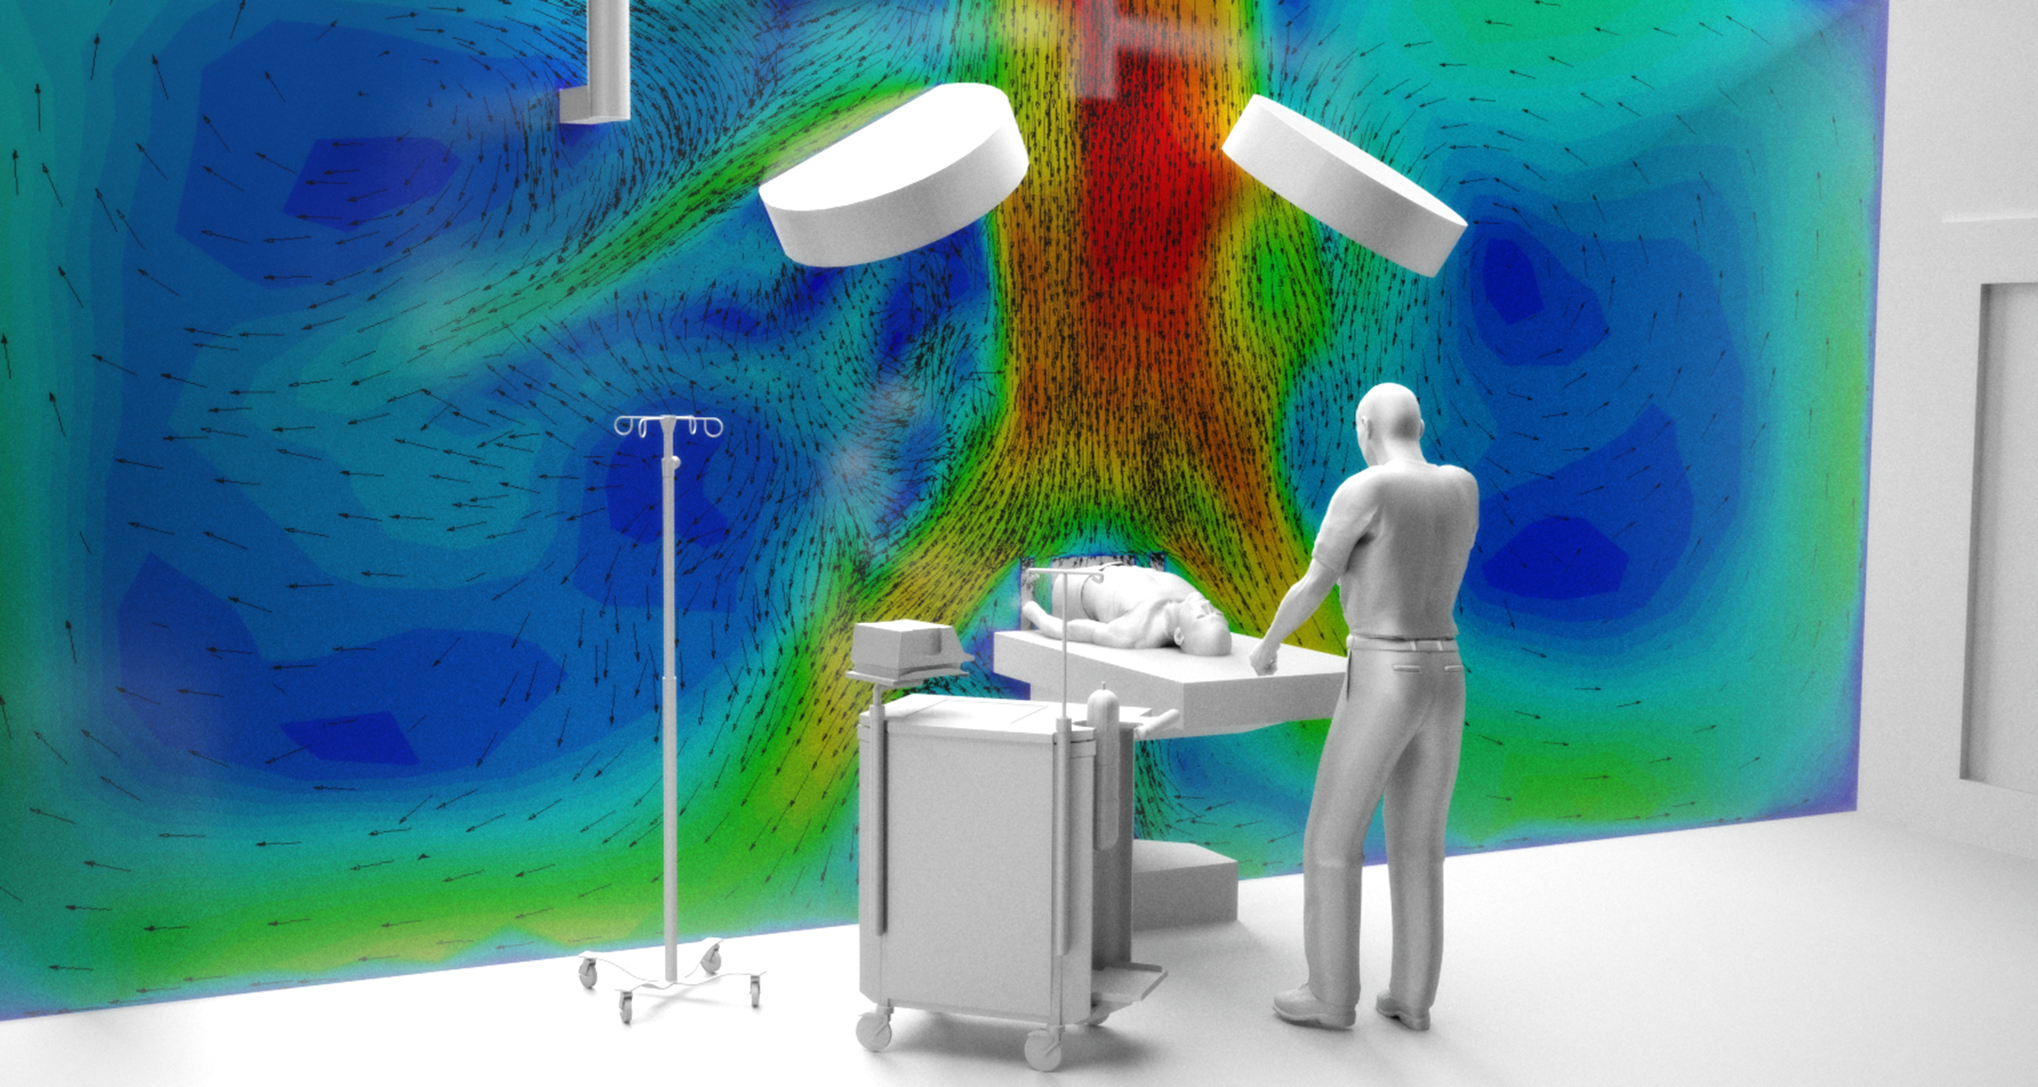 CFD of surgery airflow